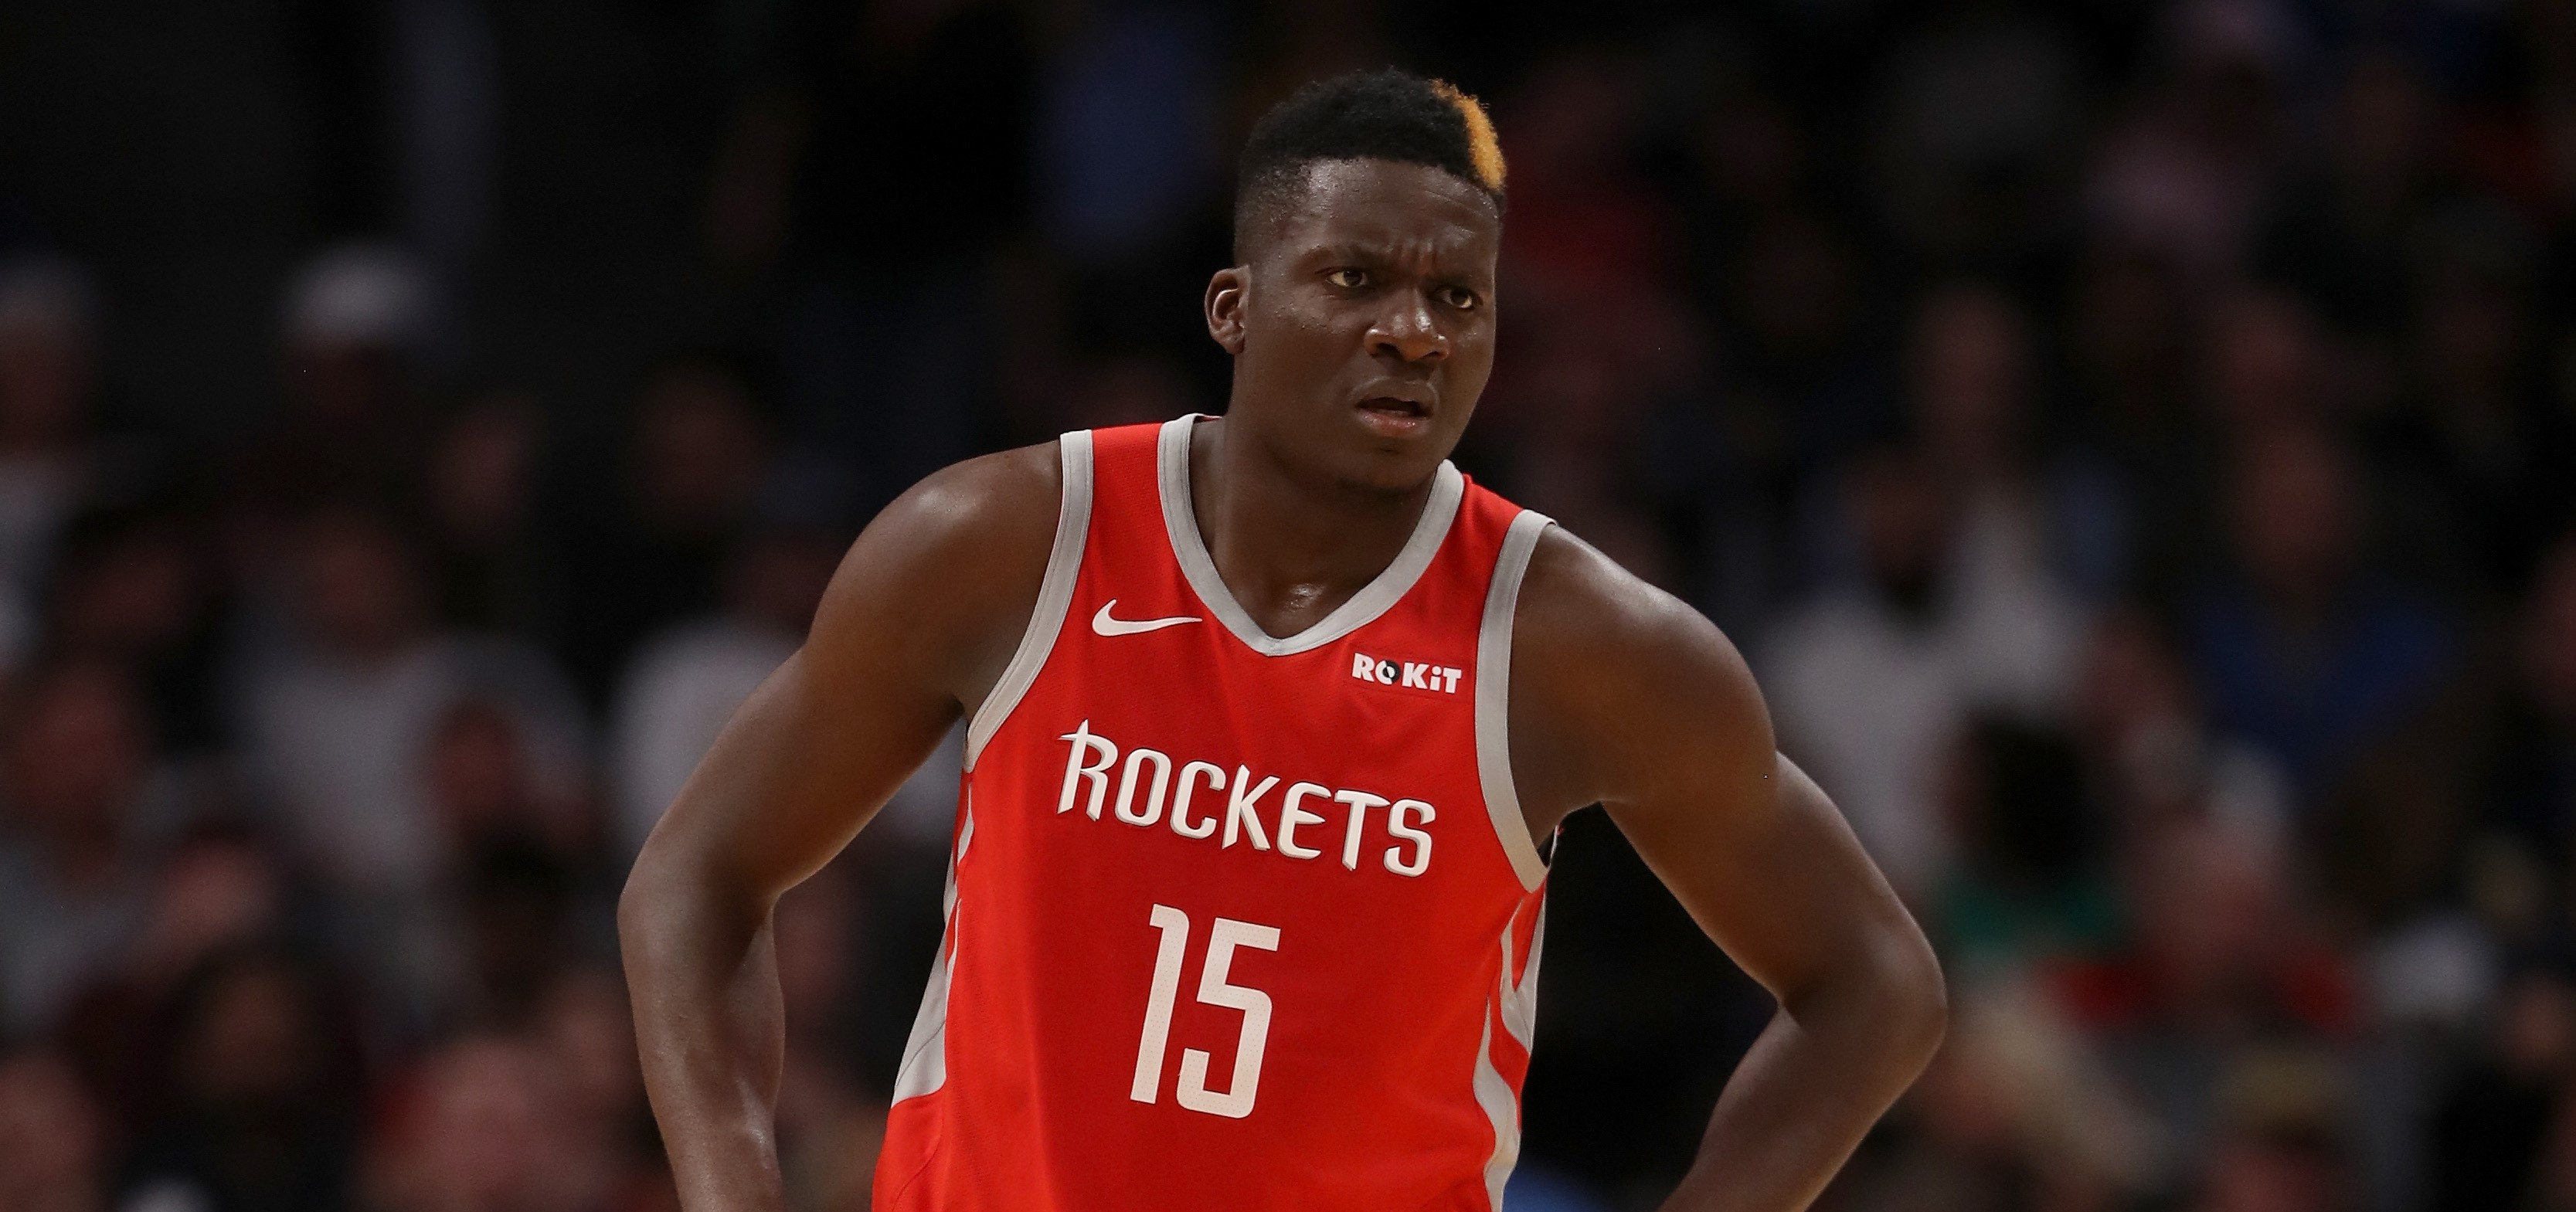 Clint Capela pourrait quitter Houston mais pour aller où ? 4 destinations possibles